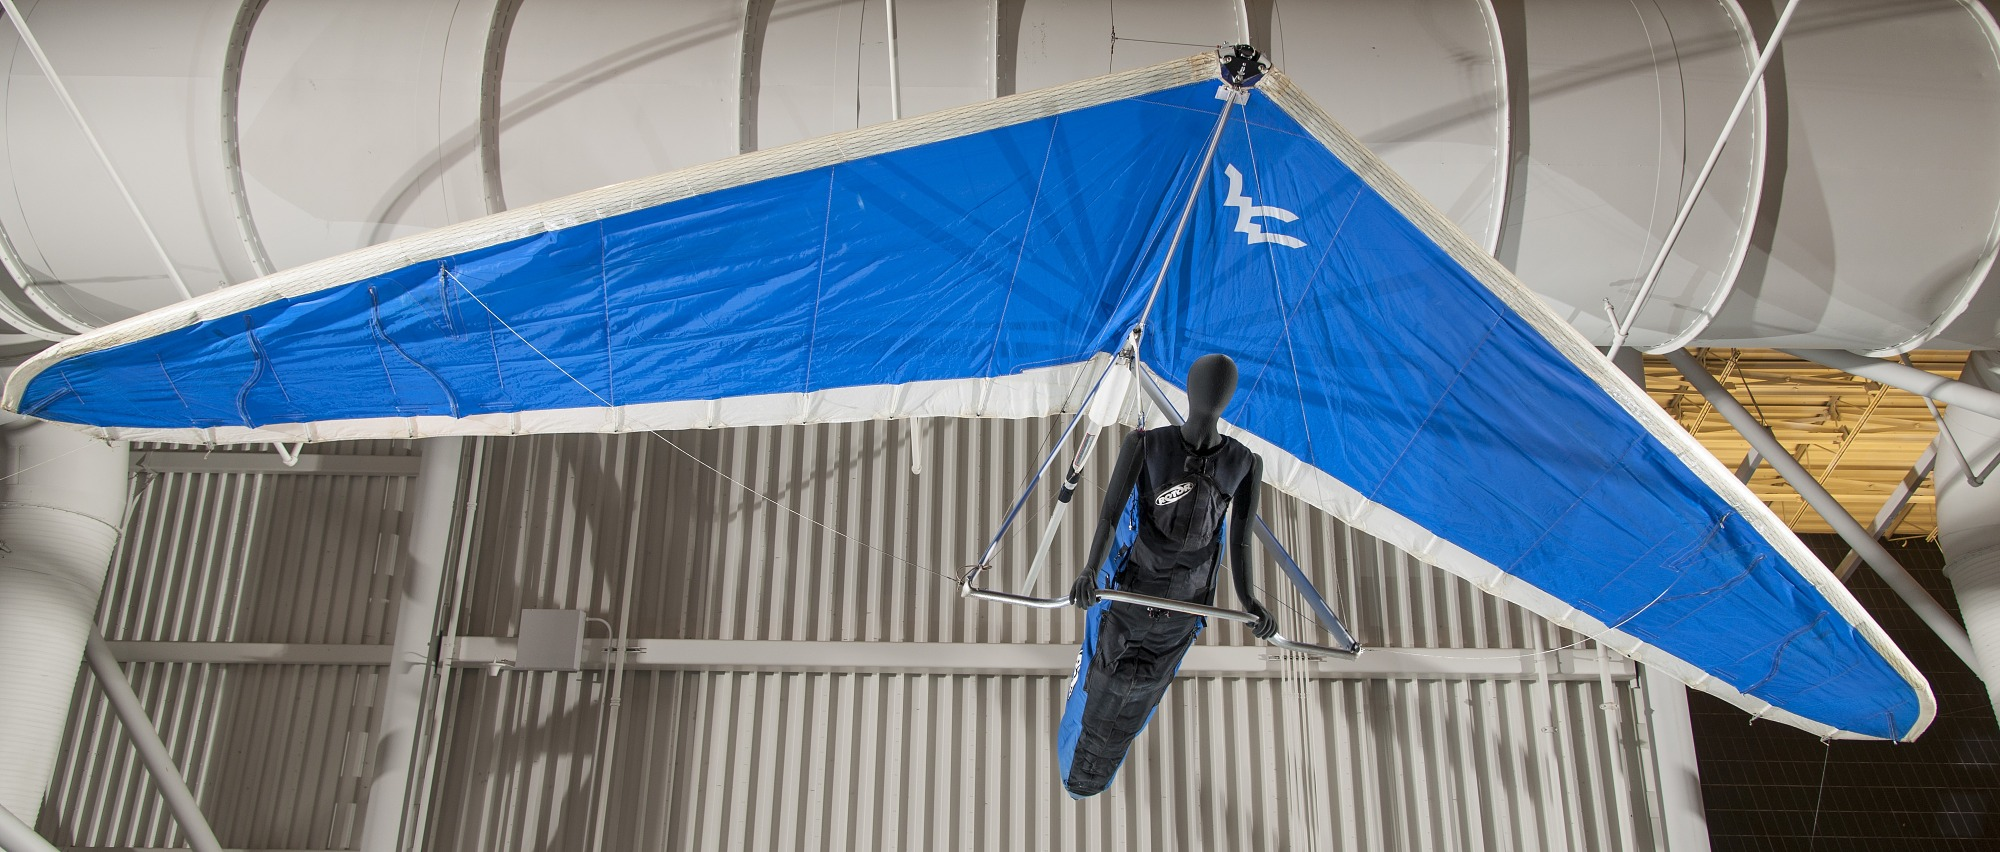 Hang Glider Wills Wing Talon 150 National Air And Space Museum